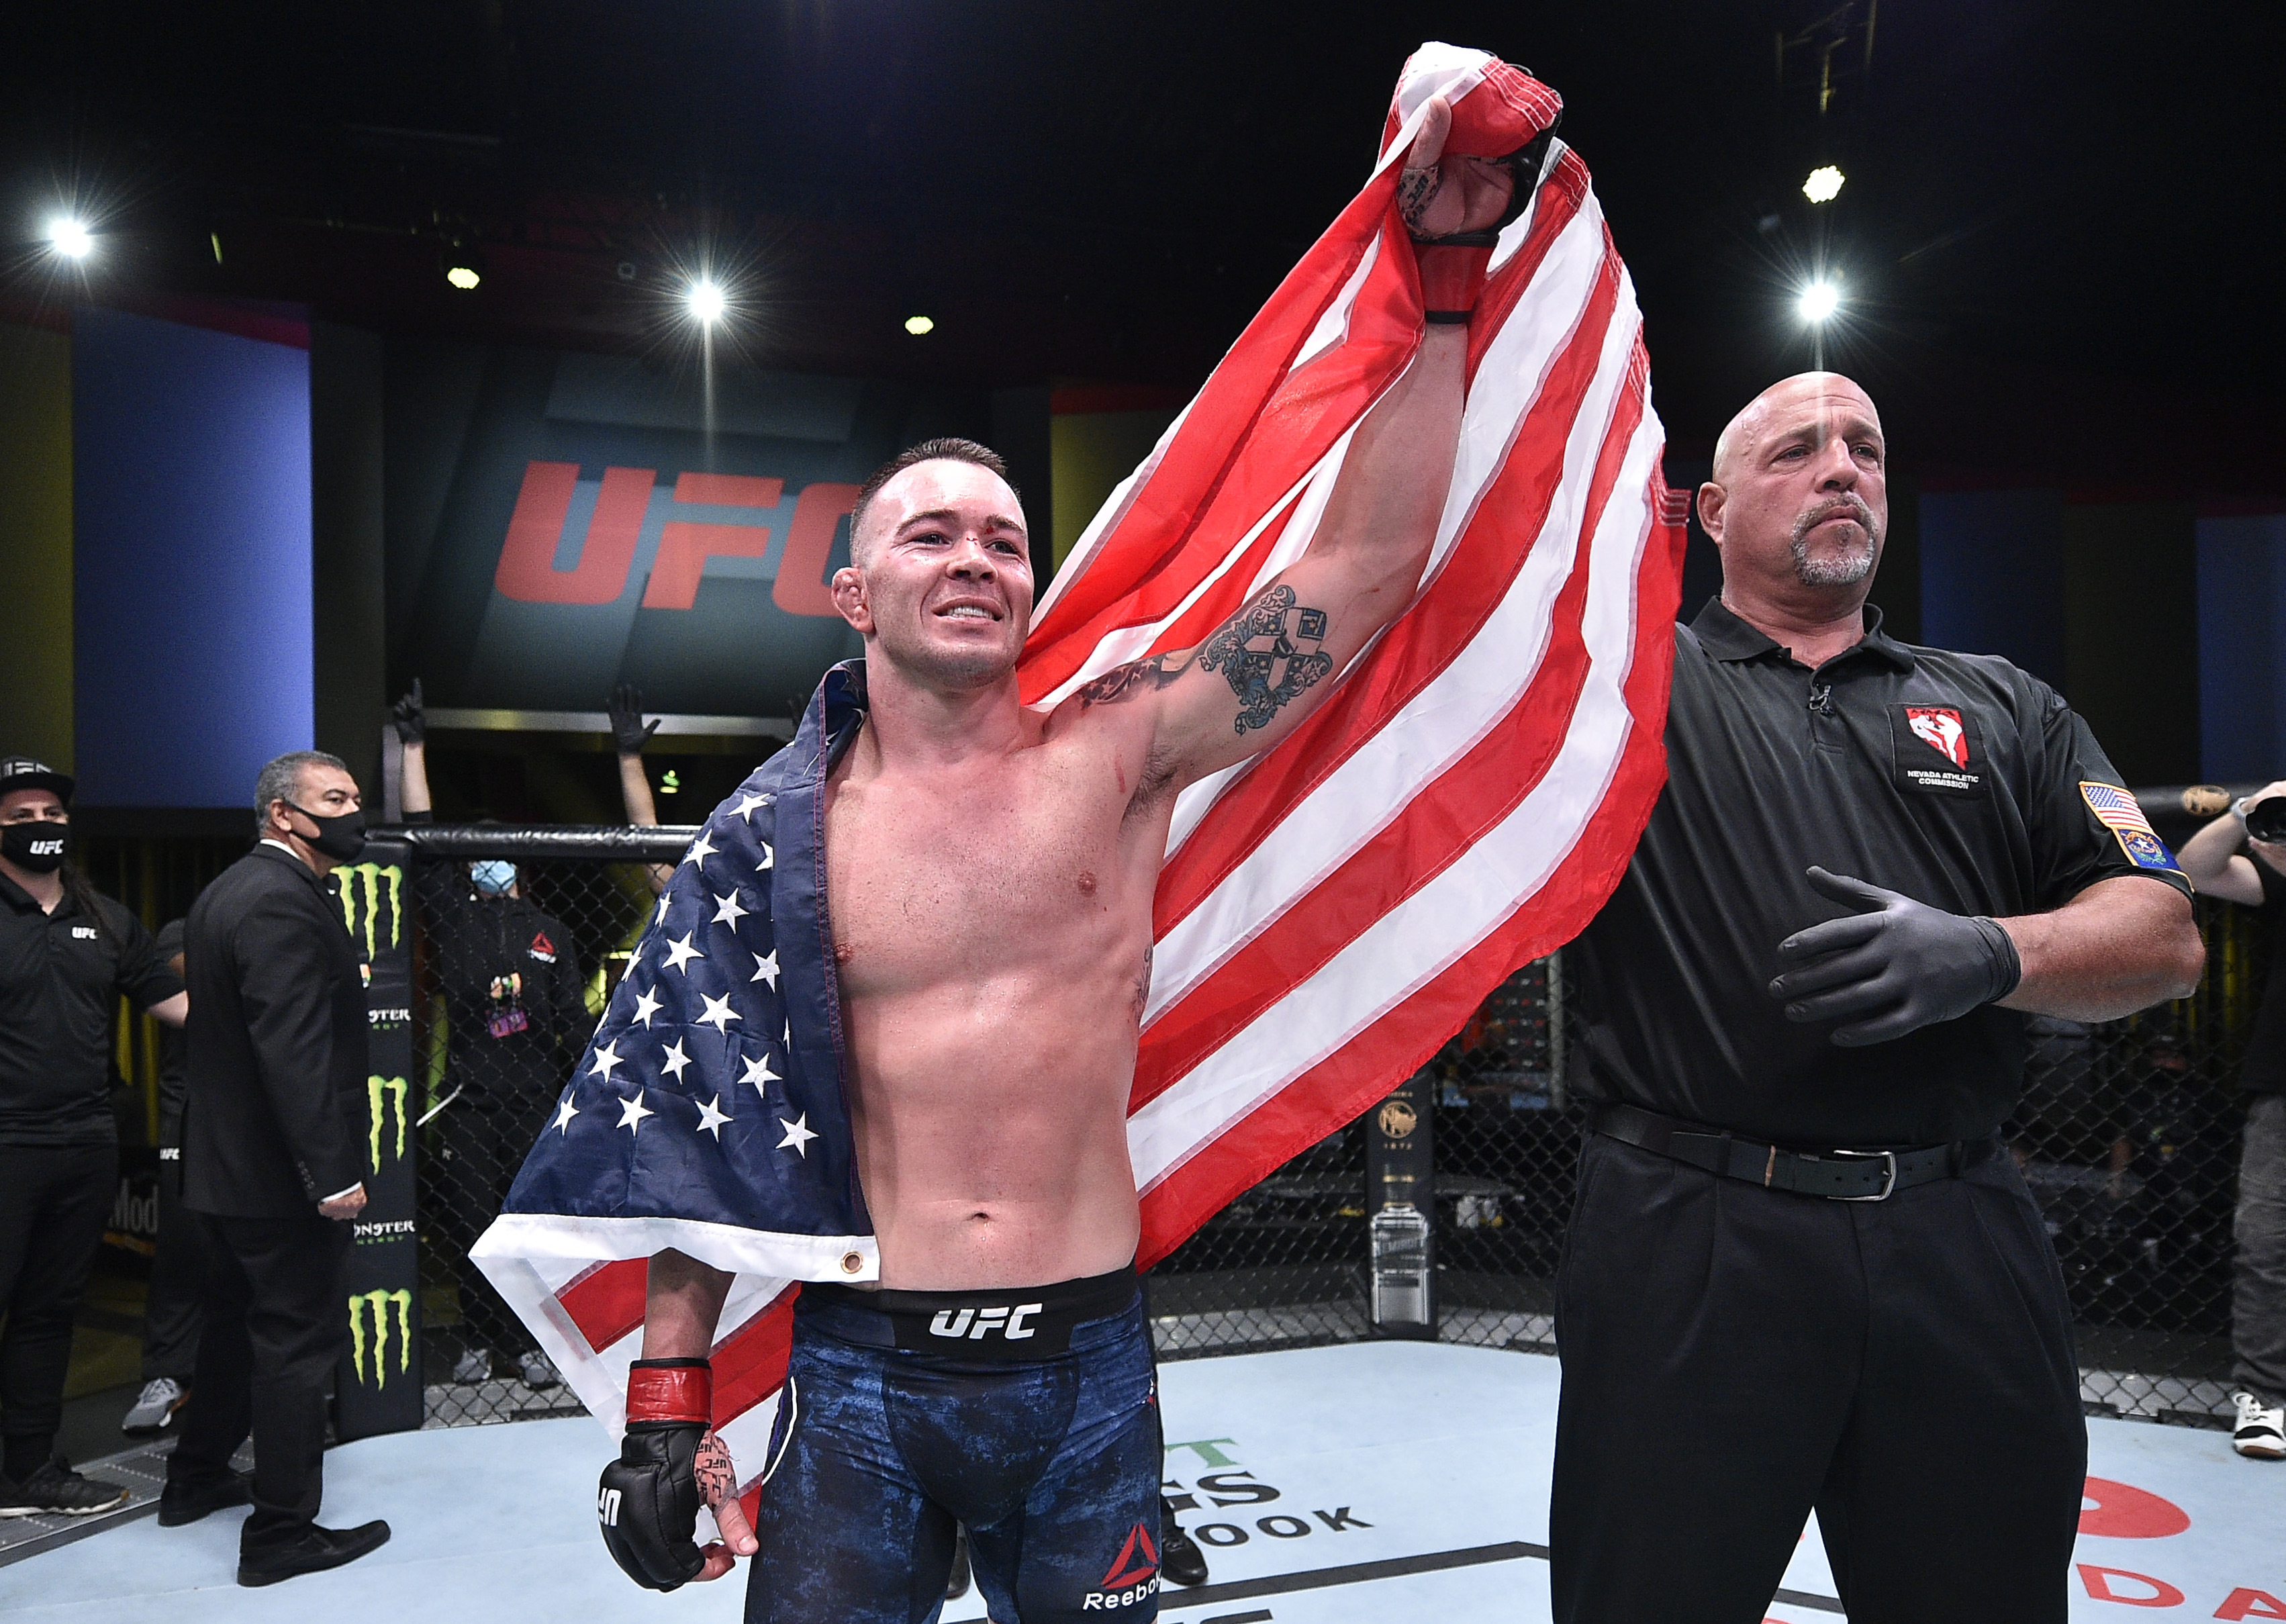 Colby Covington celebrates after winning a UFC fight